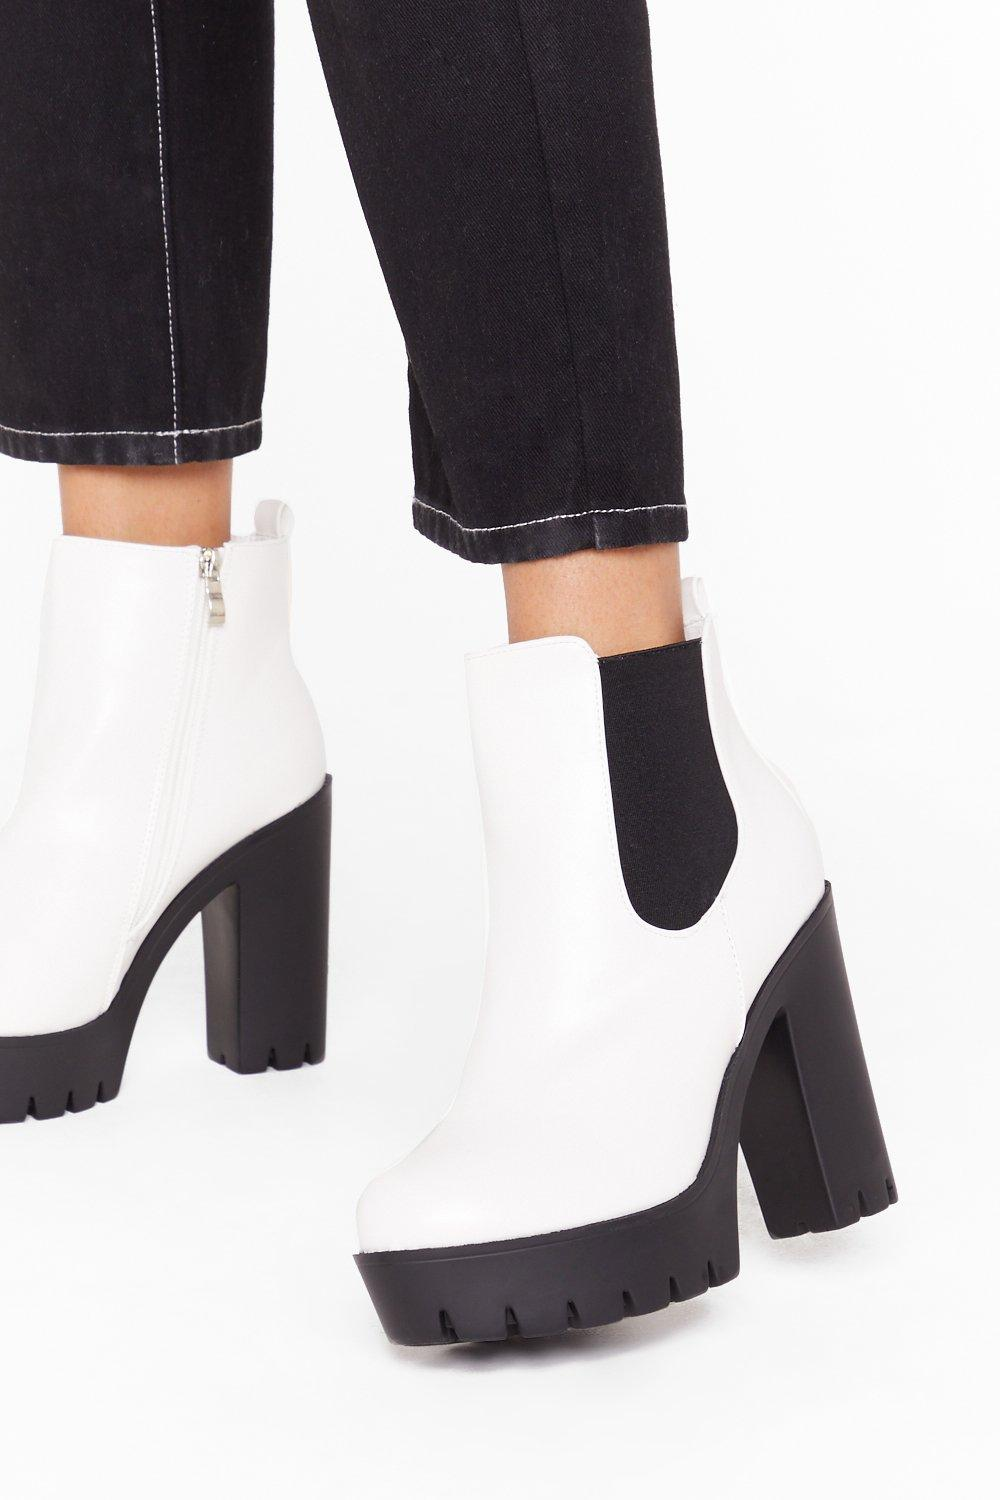 Image of Hey What's Up Faux Leather Platform Boots